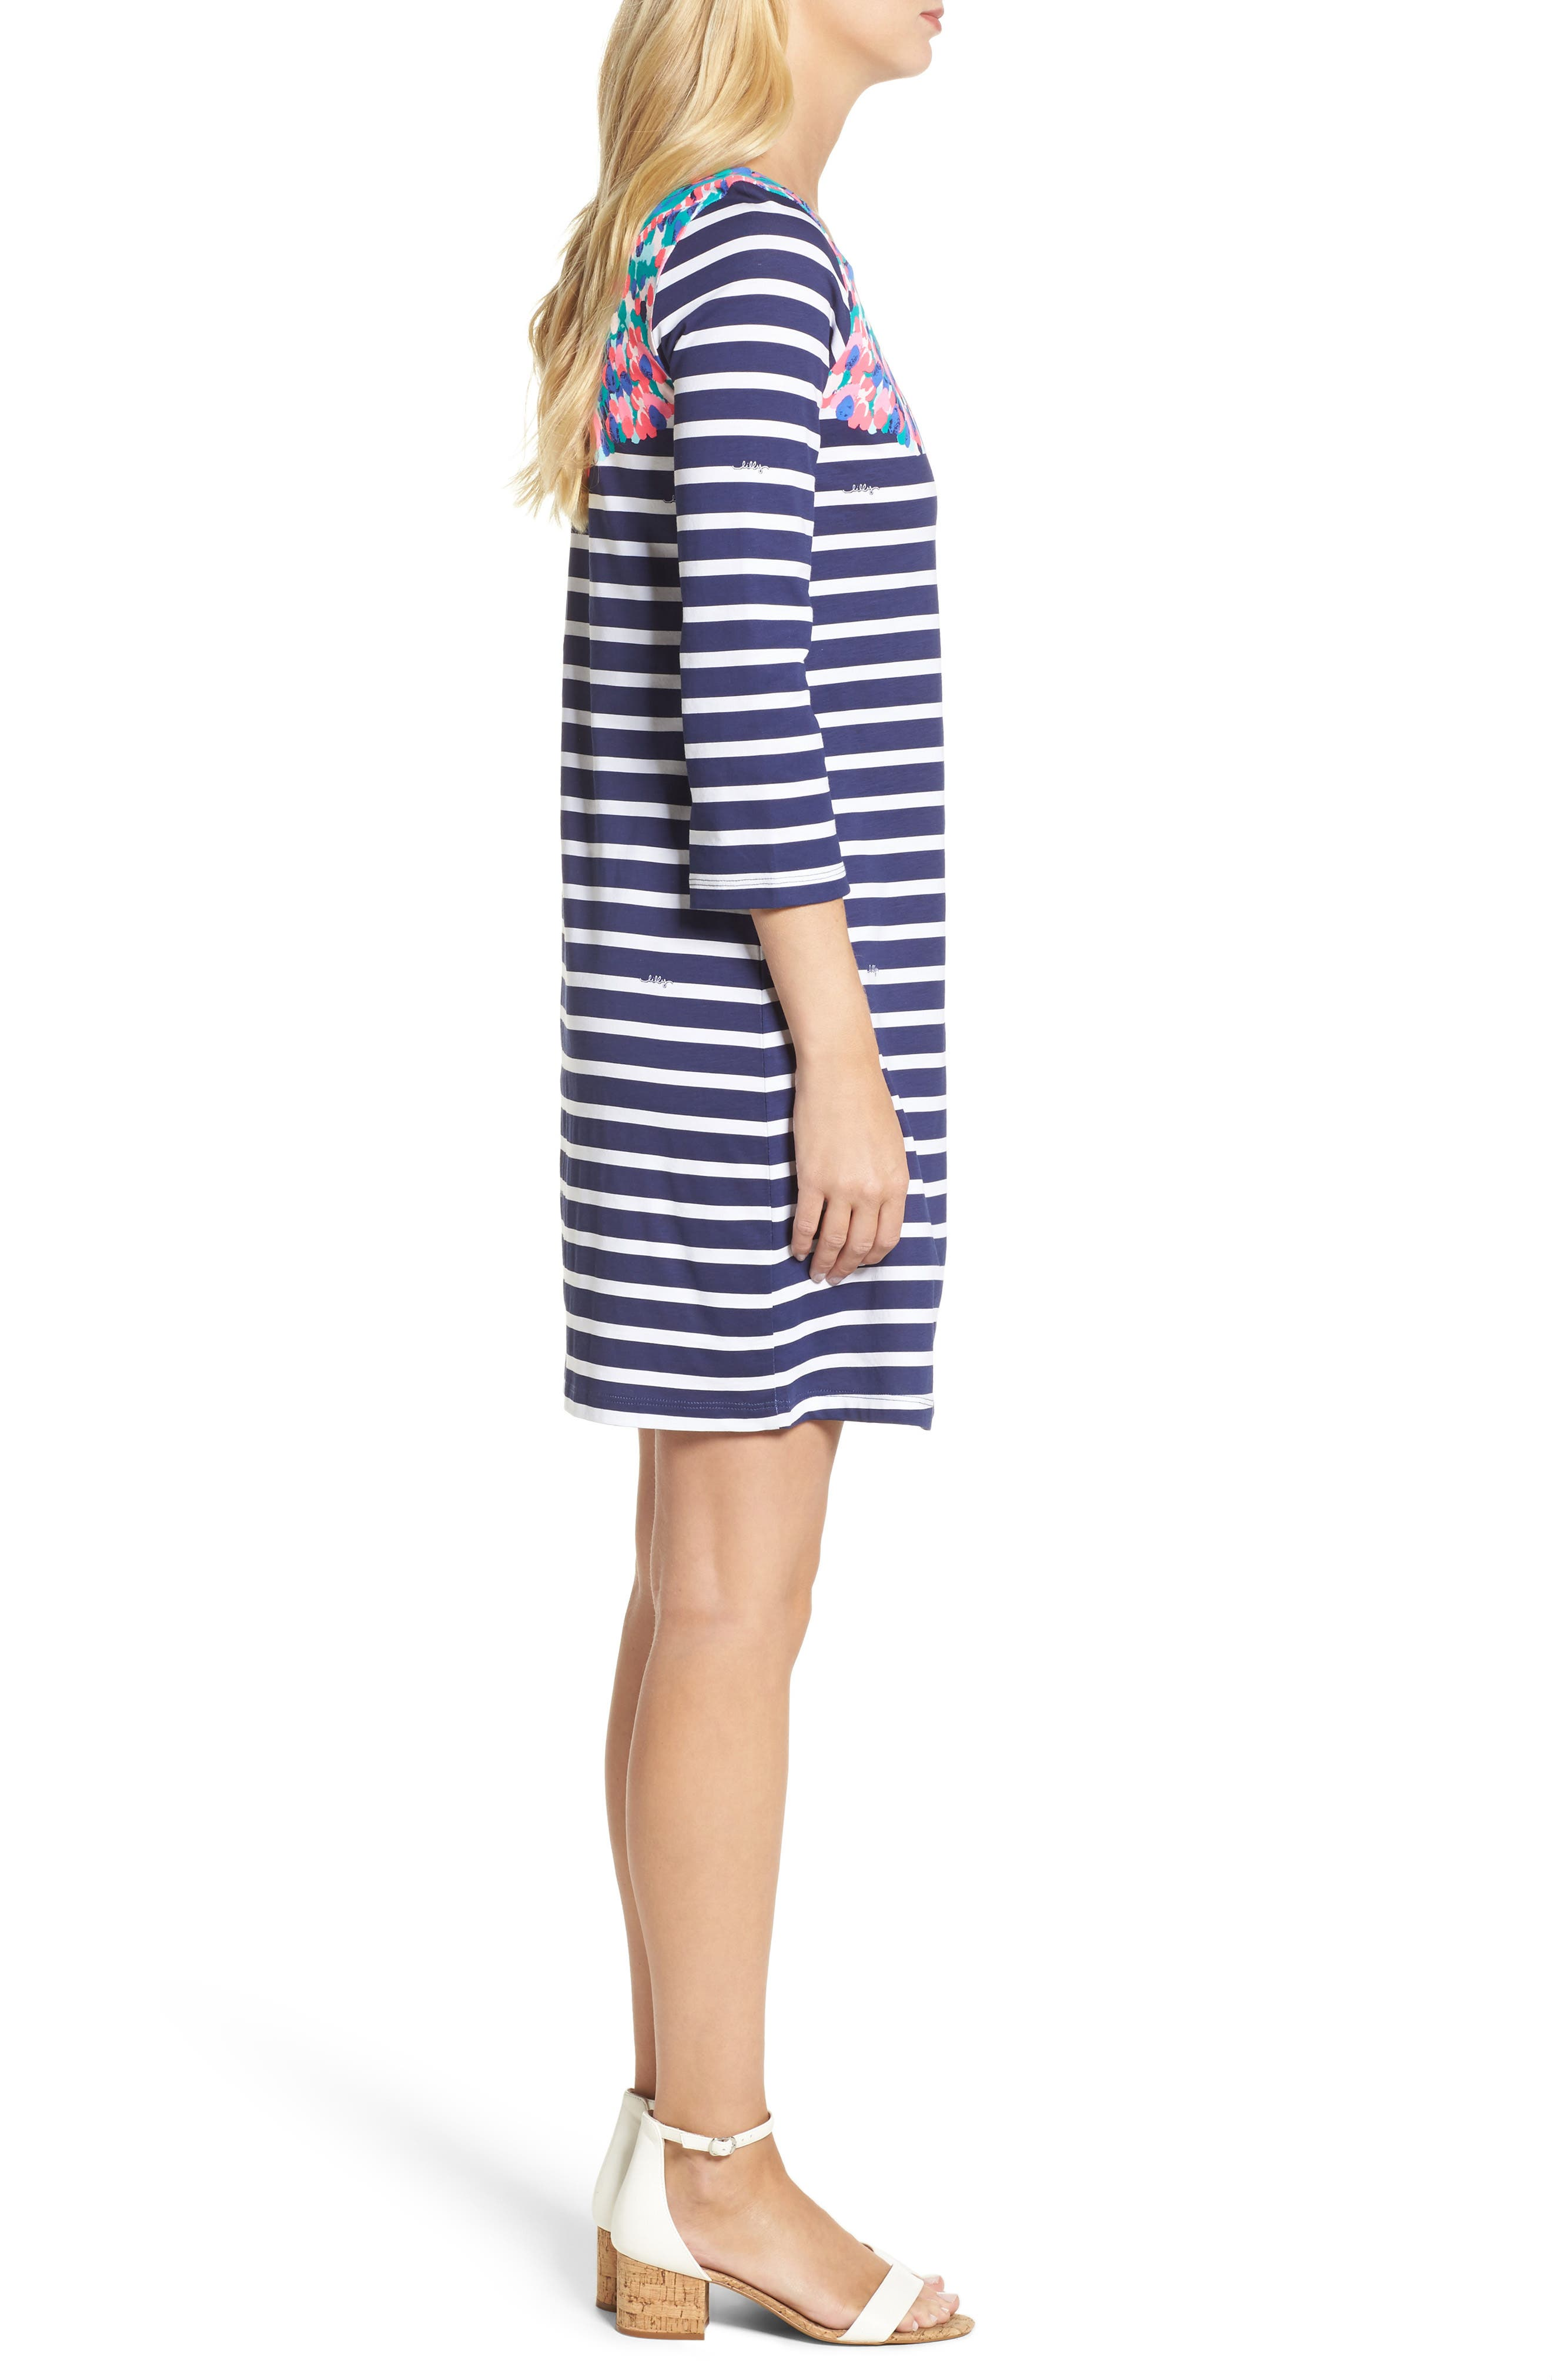 Bay Shift Dress,                             Alternate thumbnail 3, color,                             Bright Navy Island Medallion